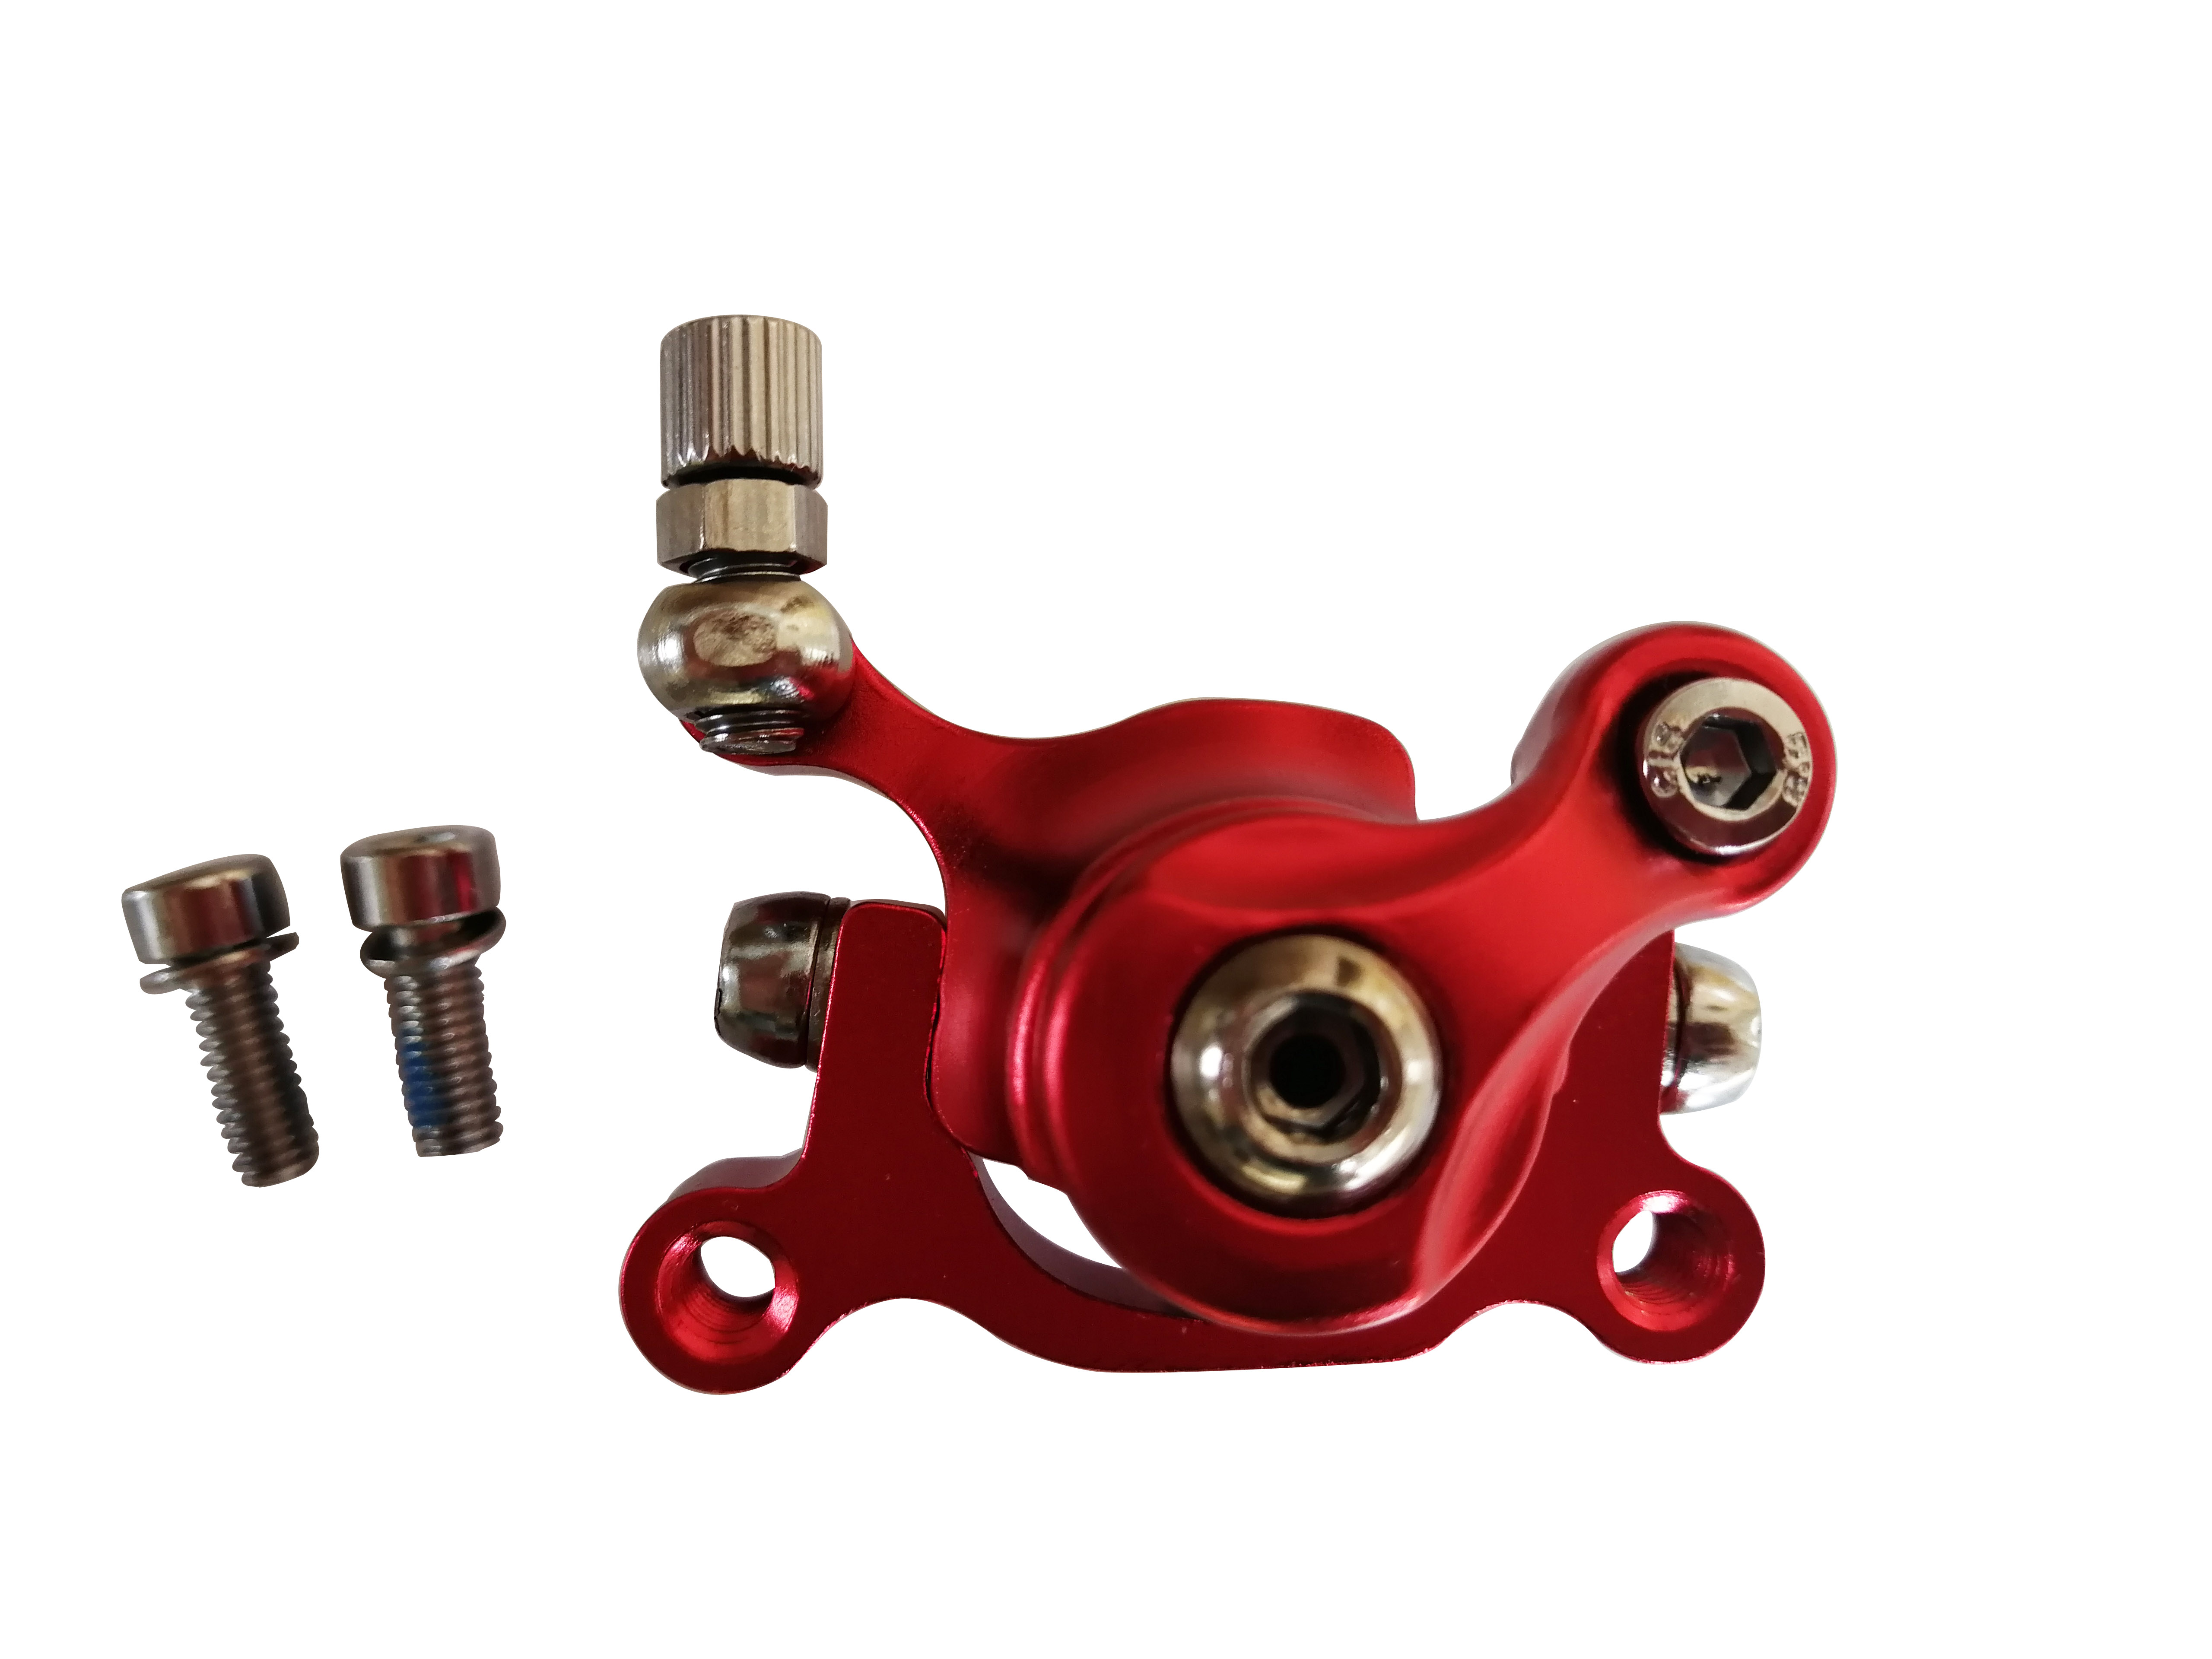 Disc Brake For WIDE WHEEL Electric Scooter Parts  Accessories